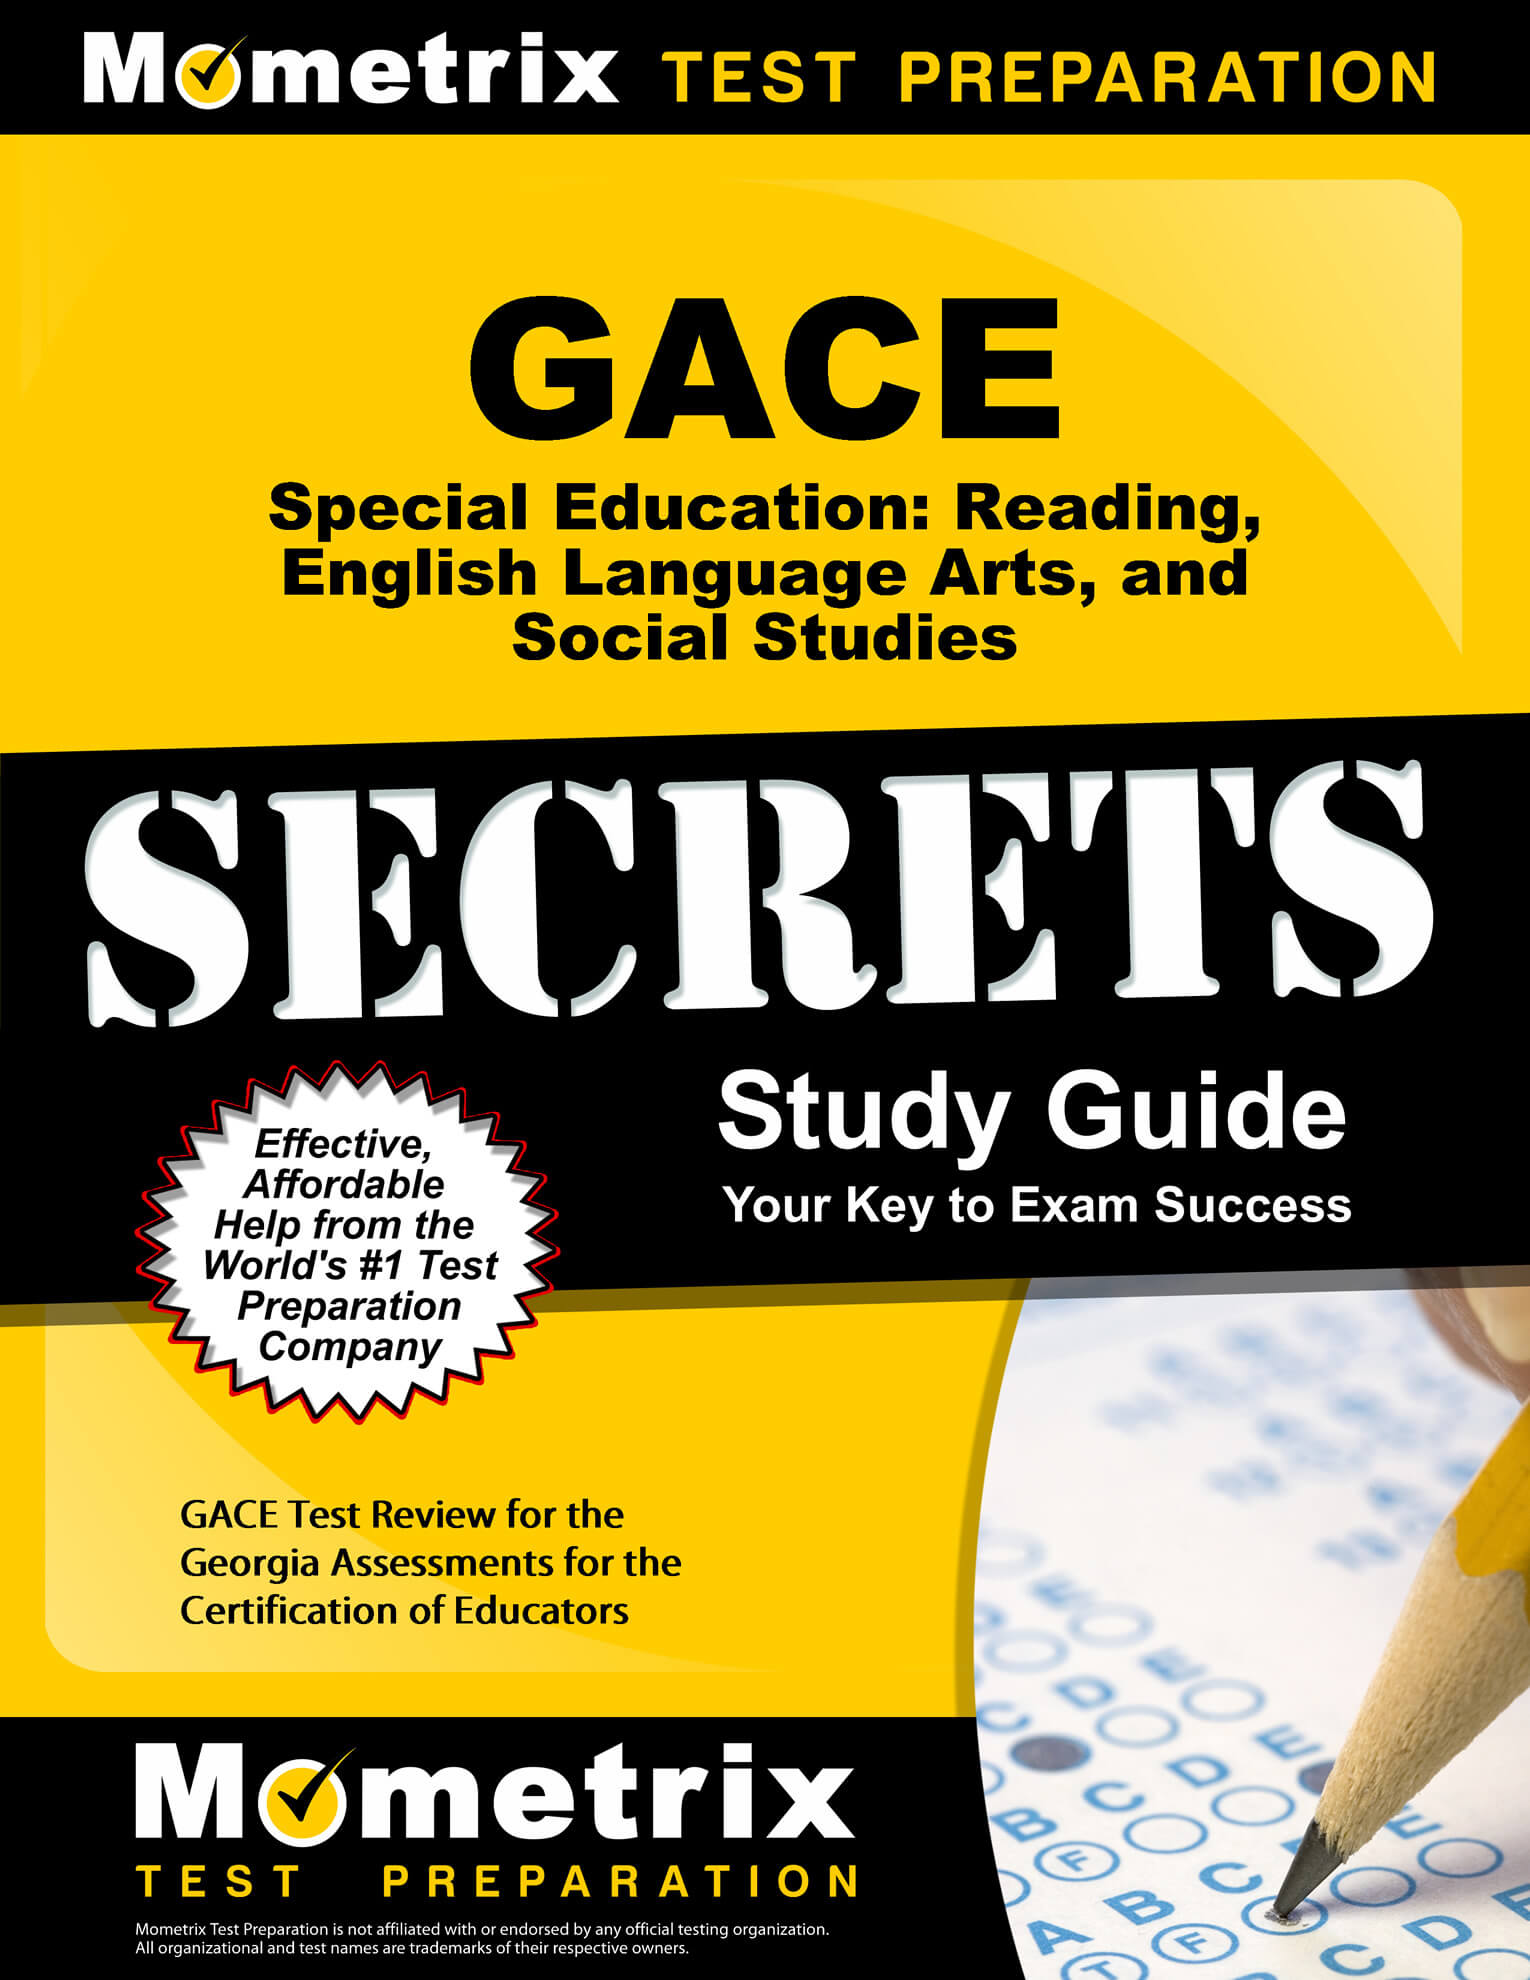 GACE Special Education Reading, English Language Arts, and Social Studies Study Guide